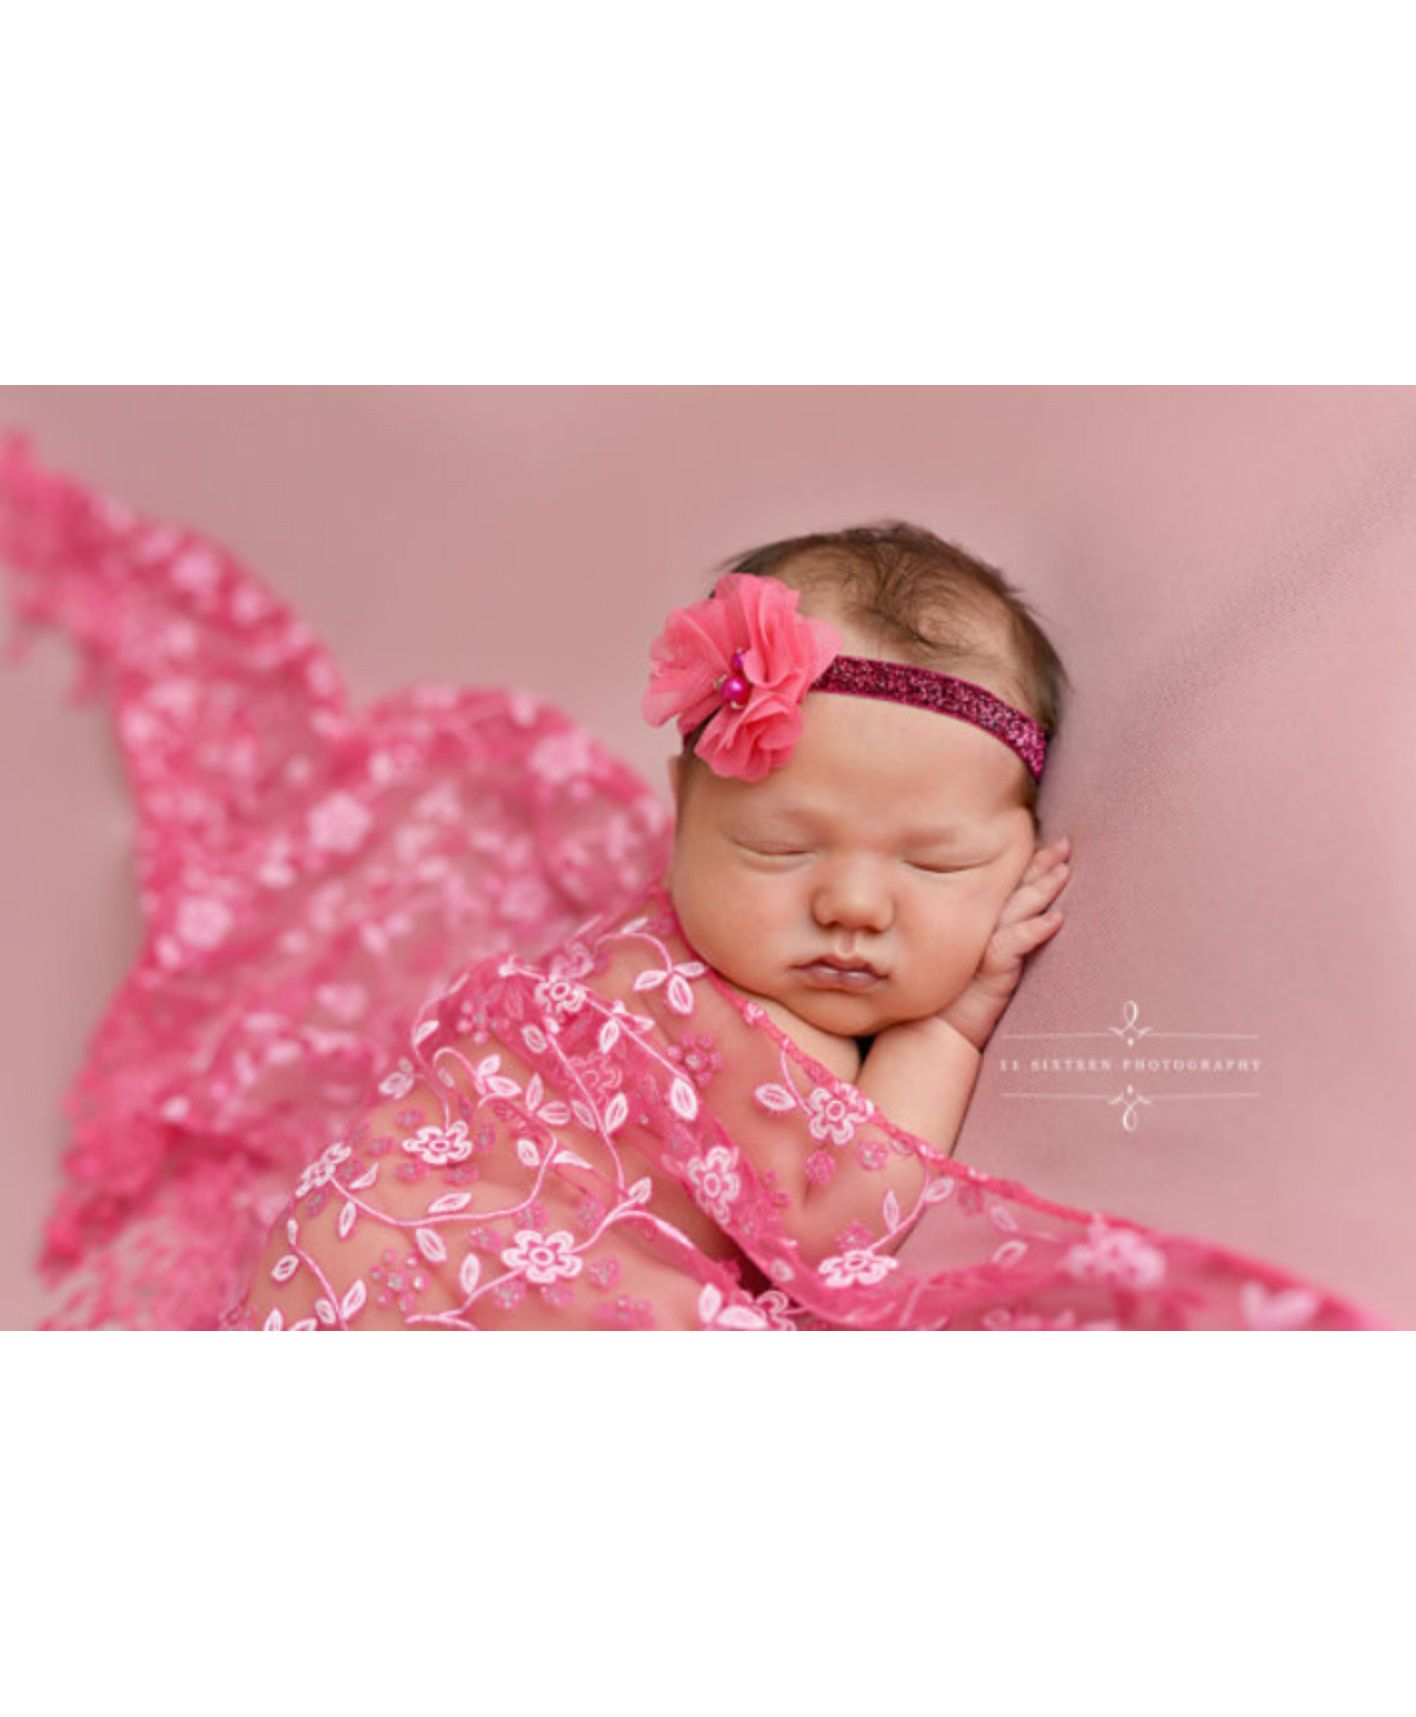 Babymoon Floral Designer Lace New Born Baby Photography Wrap Pink for Girls  (0-12 Months) Online in India, Buy at FirstCry com - 2060677